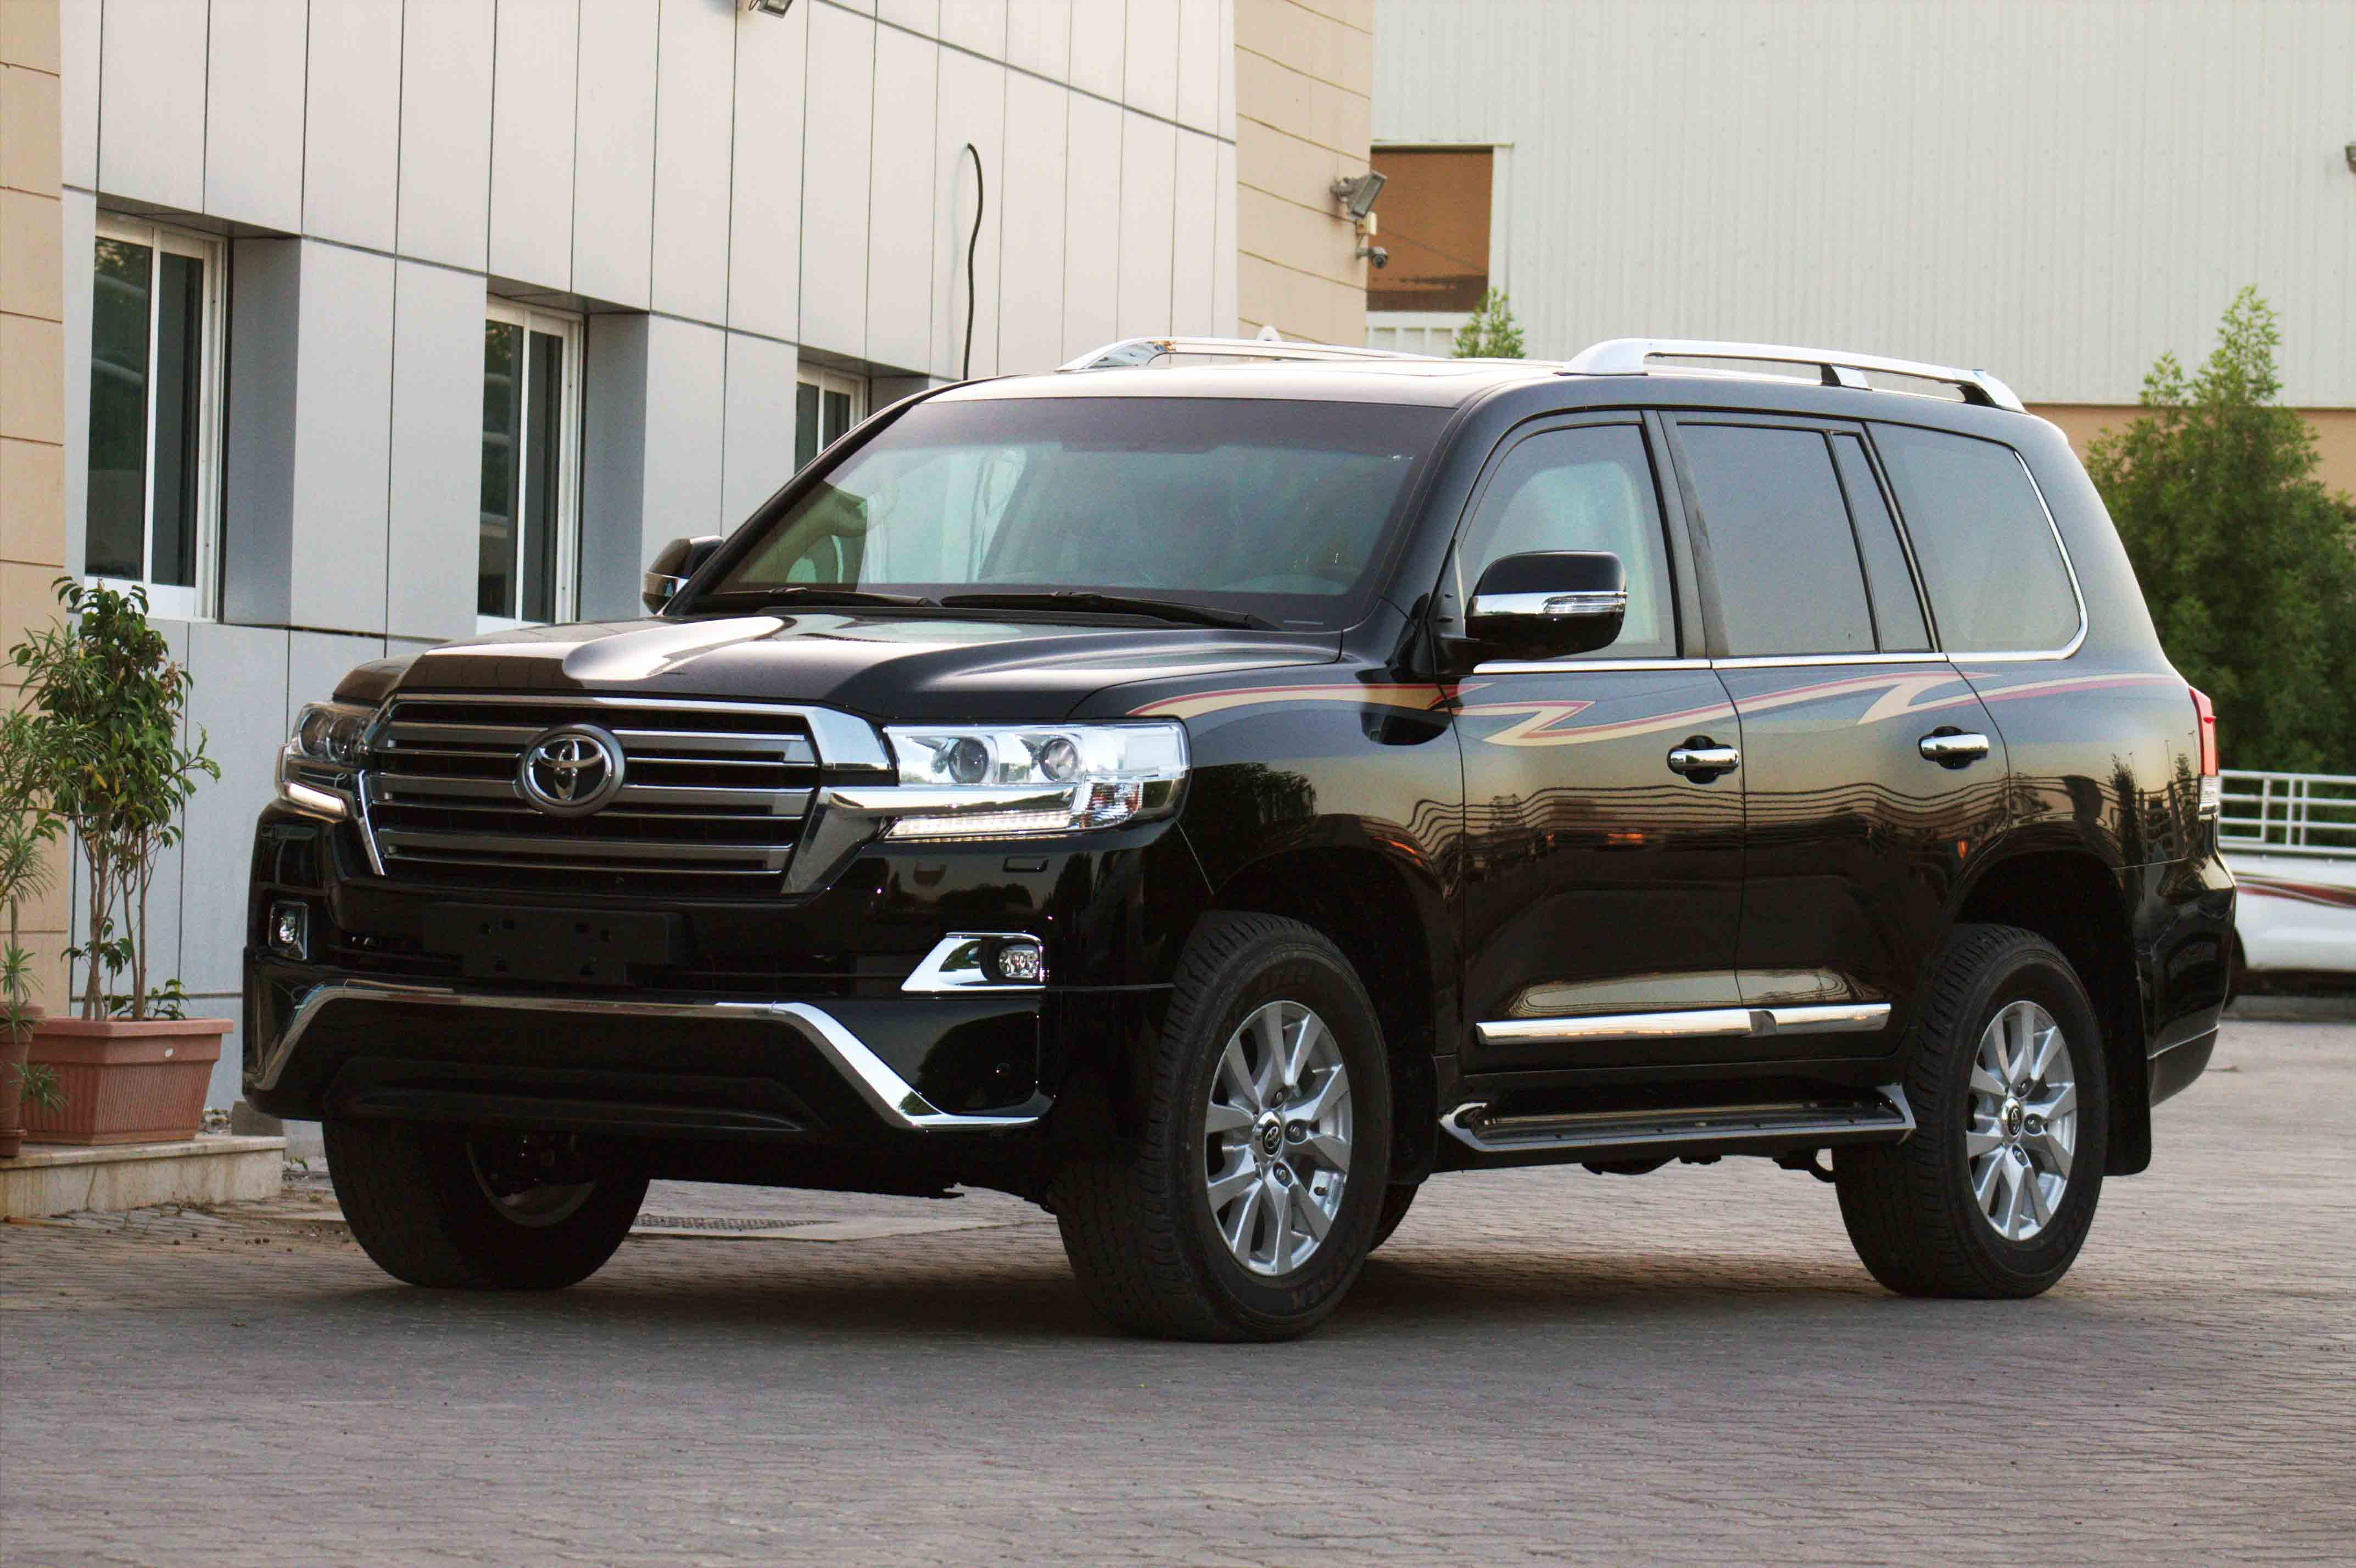 youwheel facelifted toyota its to press landcruiser land release reign extends announced cruiser view home click your car